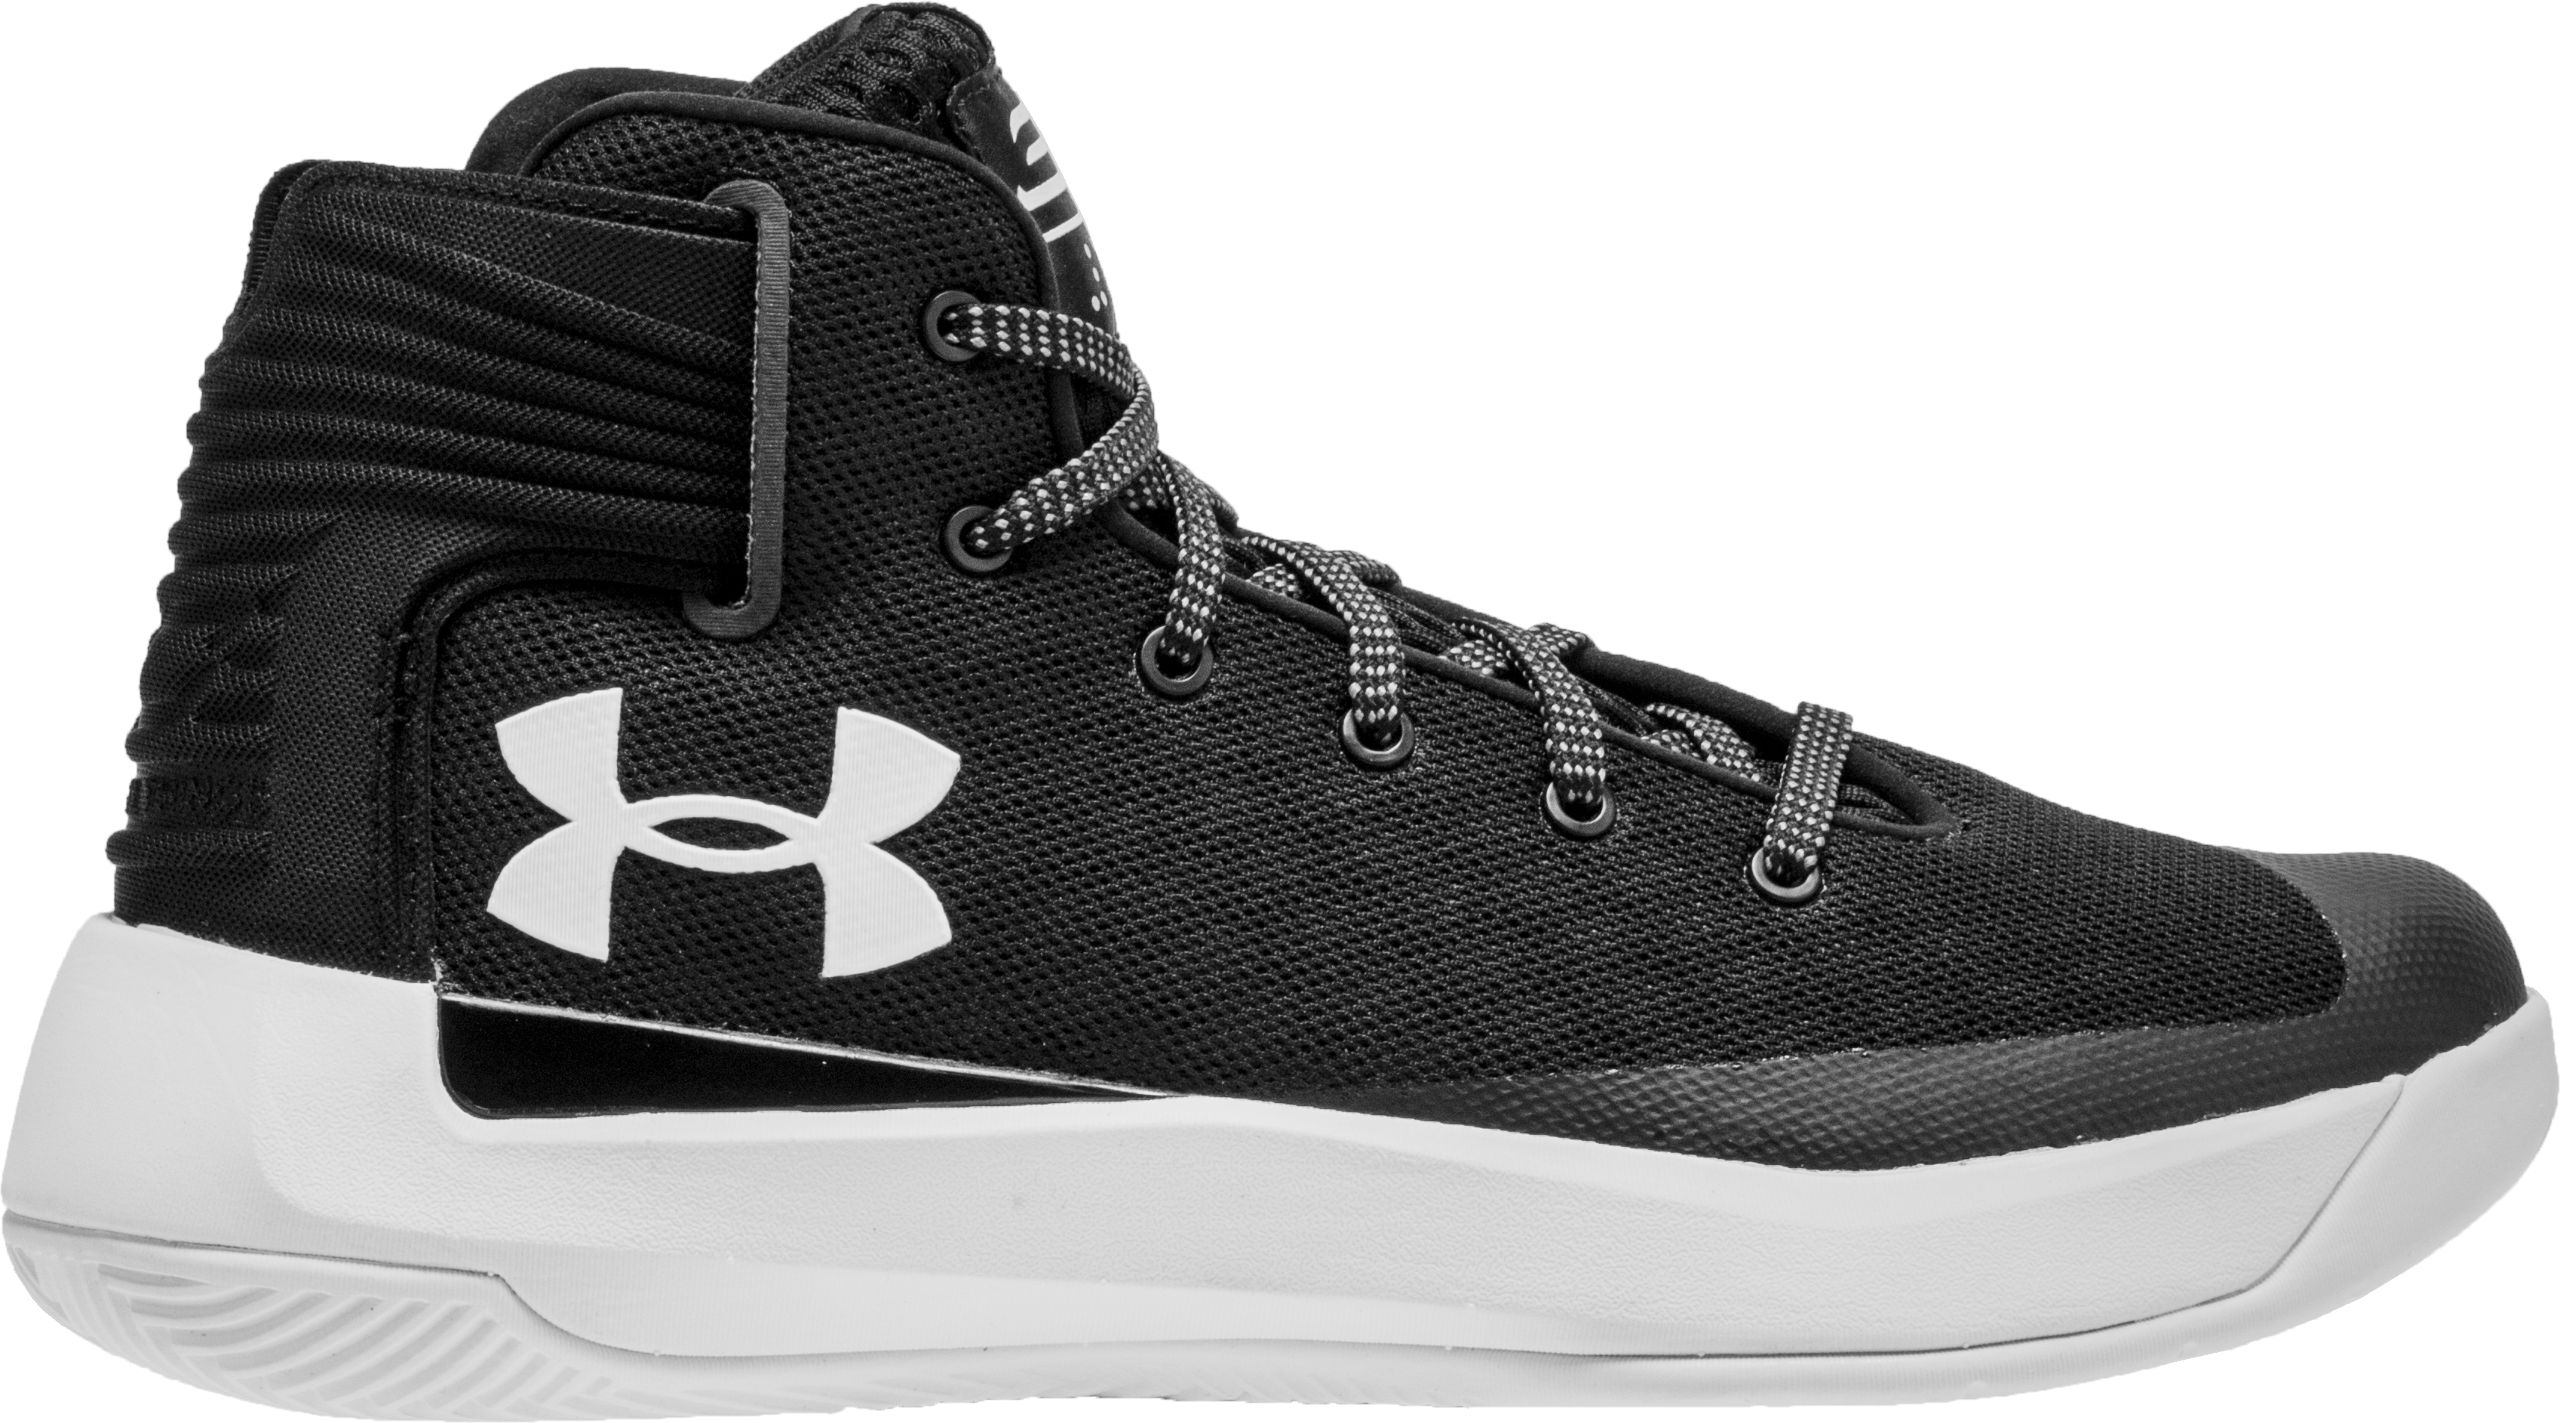 1d41175718ed Under Armour - Under Armour 1295998-001  Steph Curry 3Zer0 GS Basketball  Shoe Black White (5.5 M US Big Kid) - Walmart.com